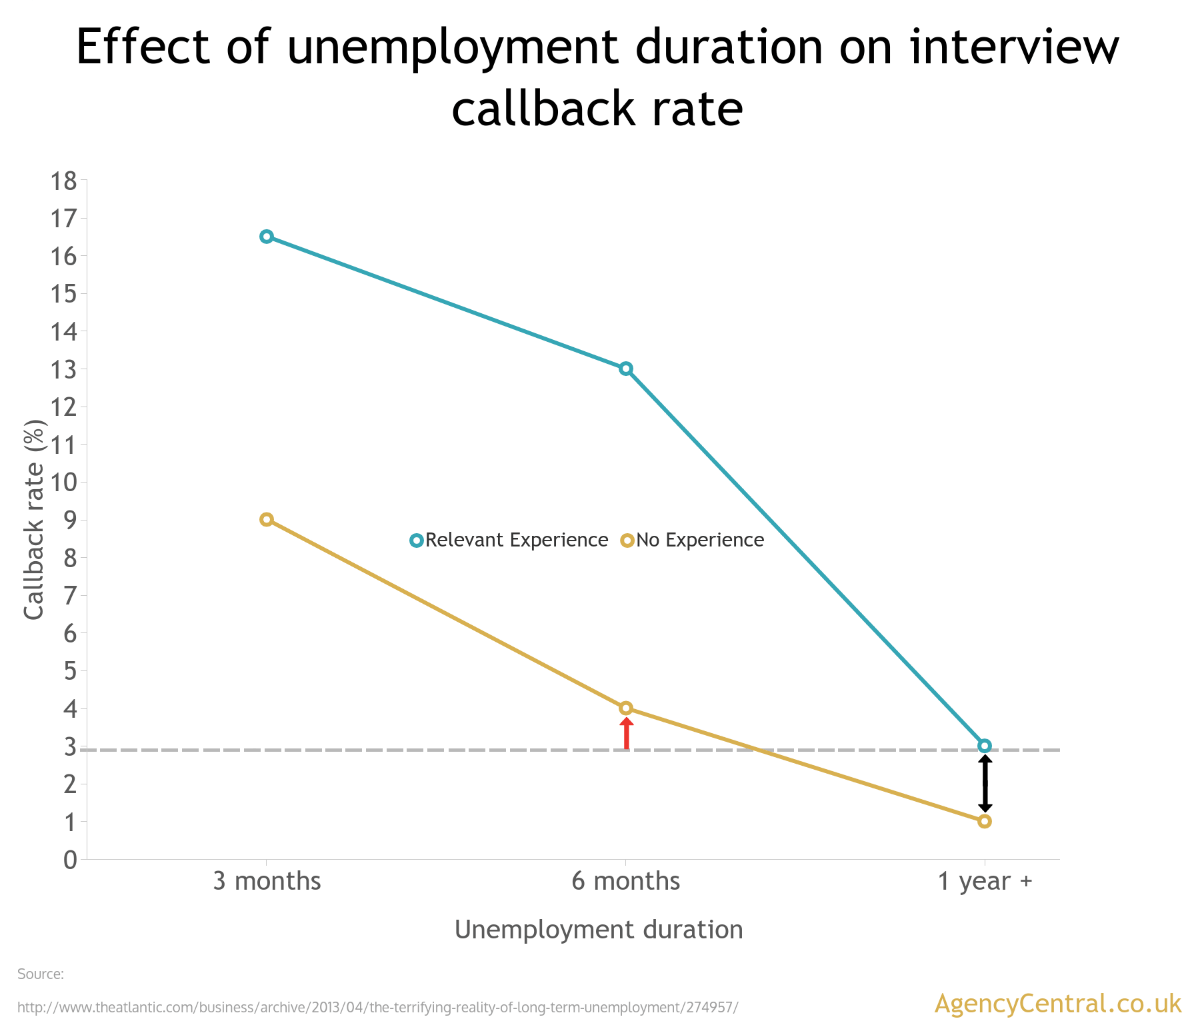 finding work again after becoming unemployed as you can see the interview callback rate severely drops off in correlation the length of time a person has been unemployed for